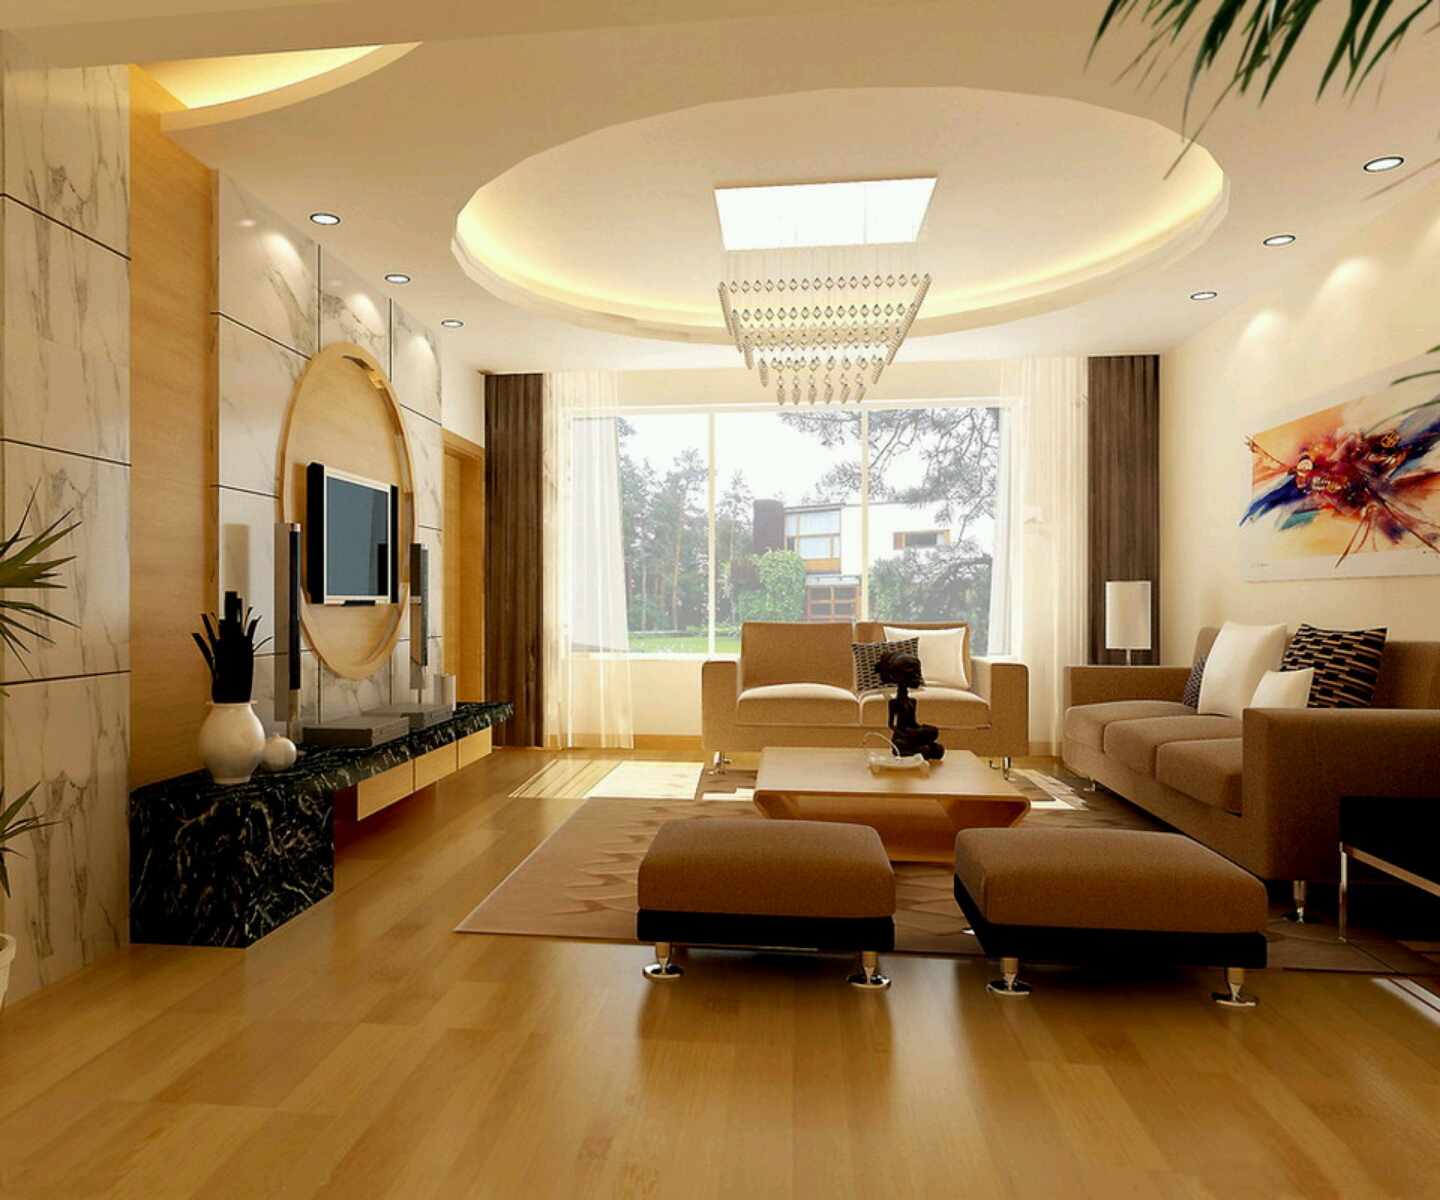 Modern interior decoration living rooms ceiling designs for House living room design